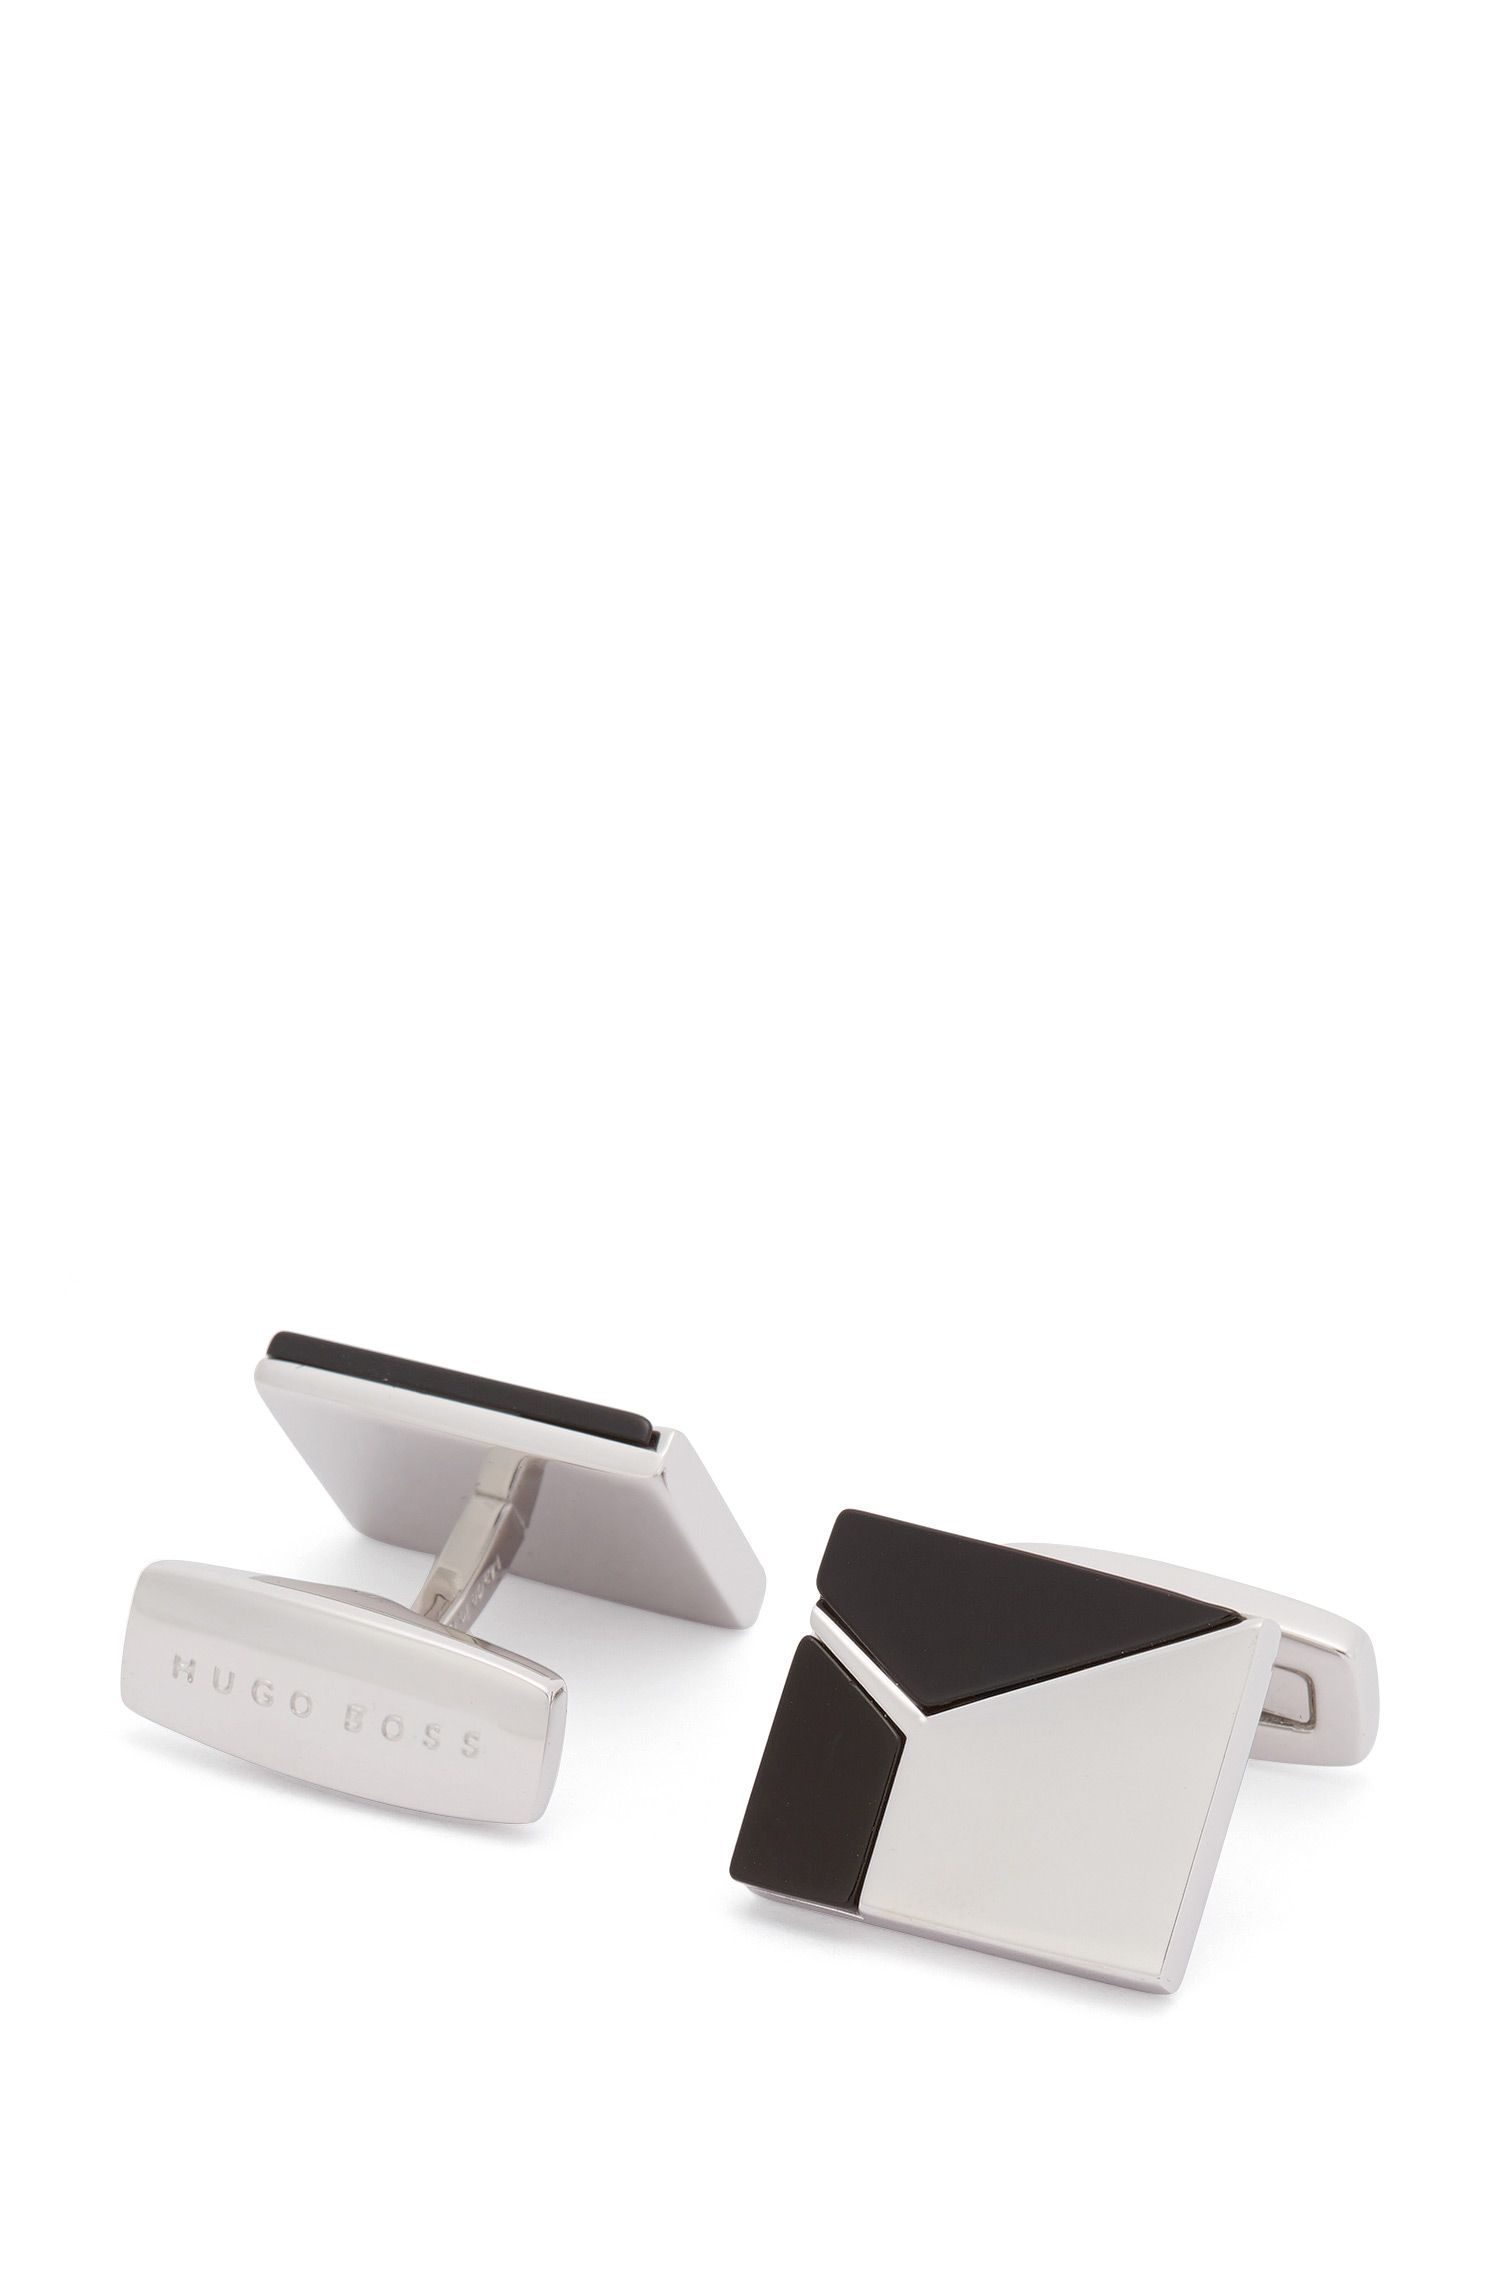 Square cufflinks with geometric onyx inserts